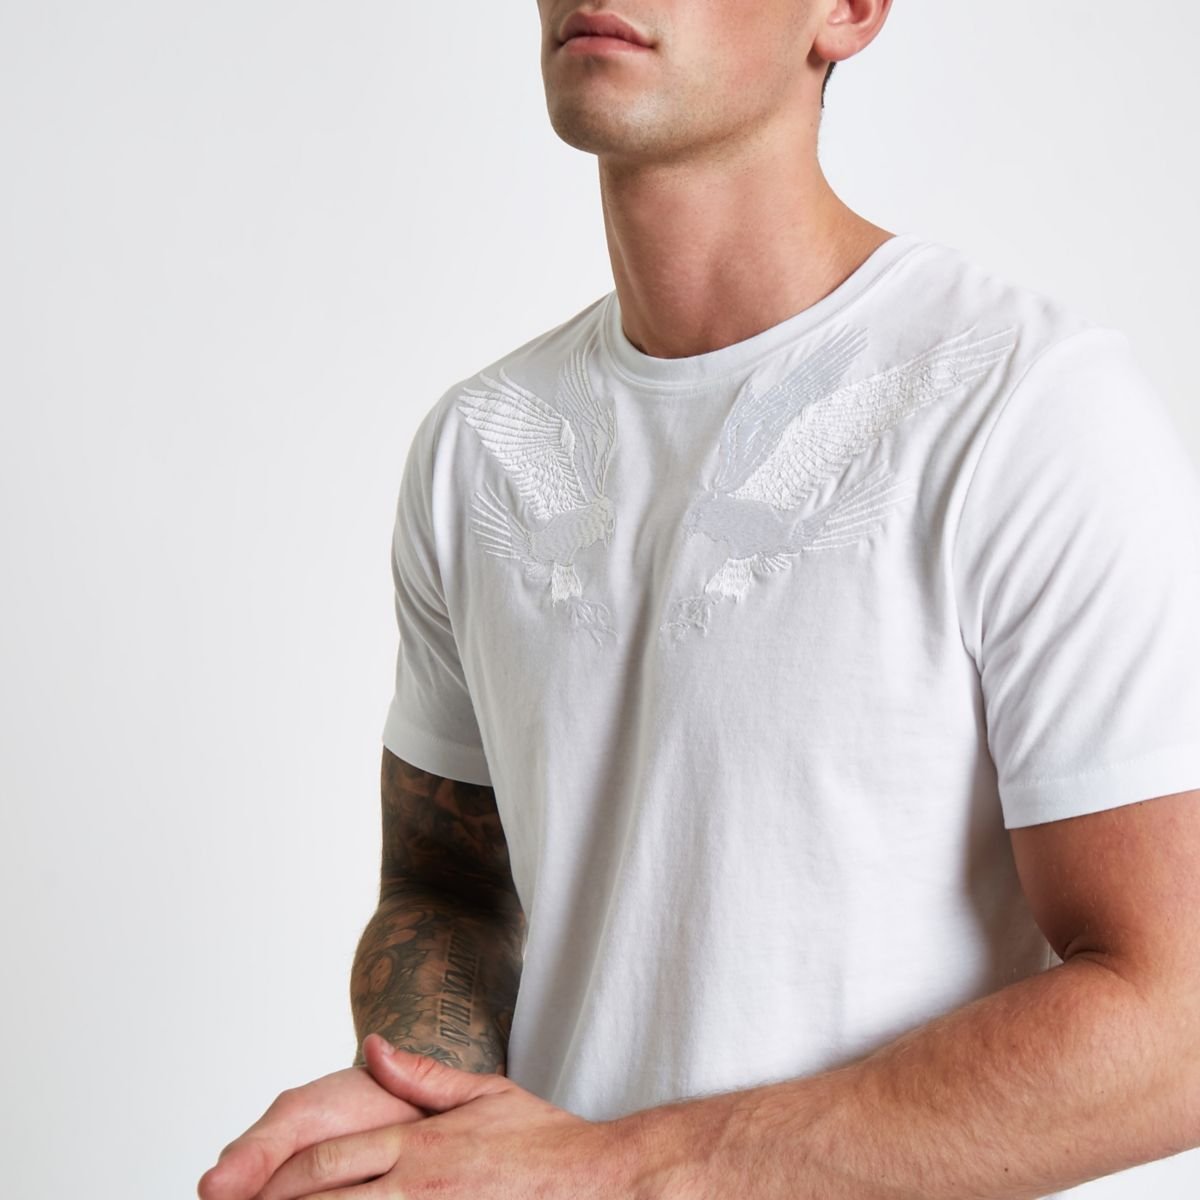 With Paypal Free Shipping River Island Mens Jack and Jones White falcon embroidered T-shirt Jack & Jones Geniue Stockist Cheap Online u4U3F9ug